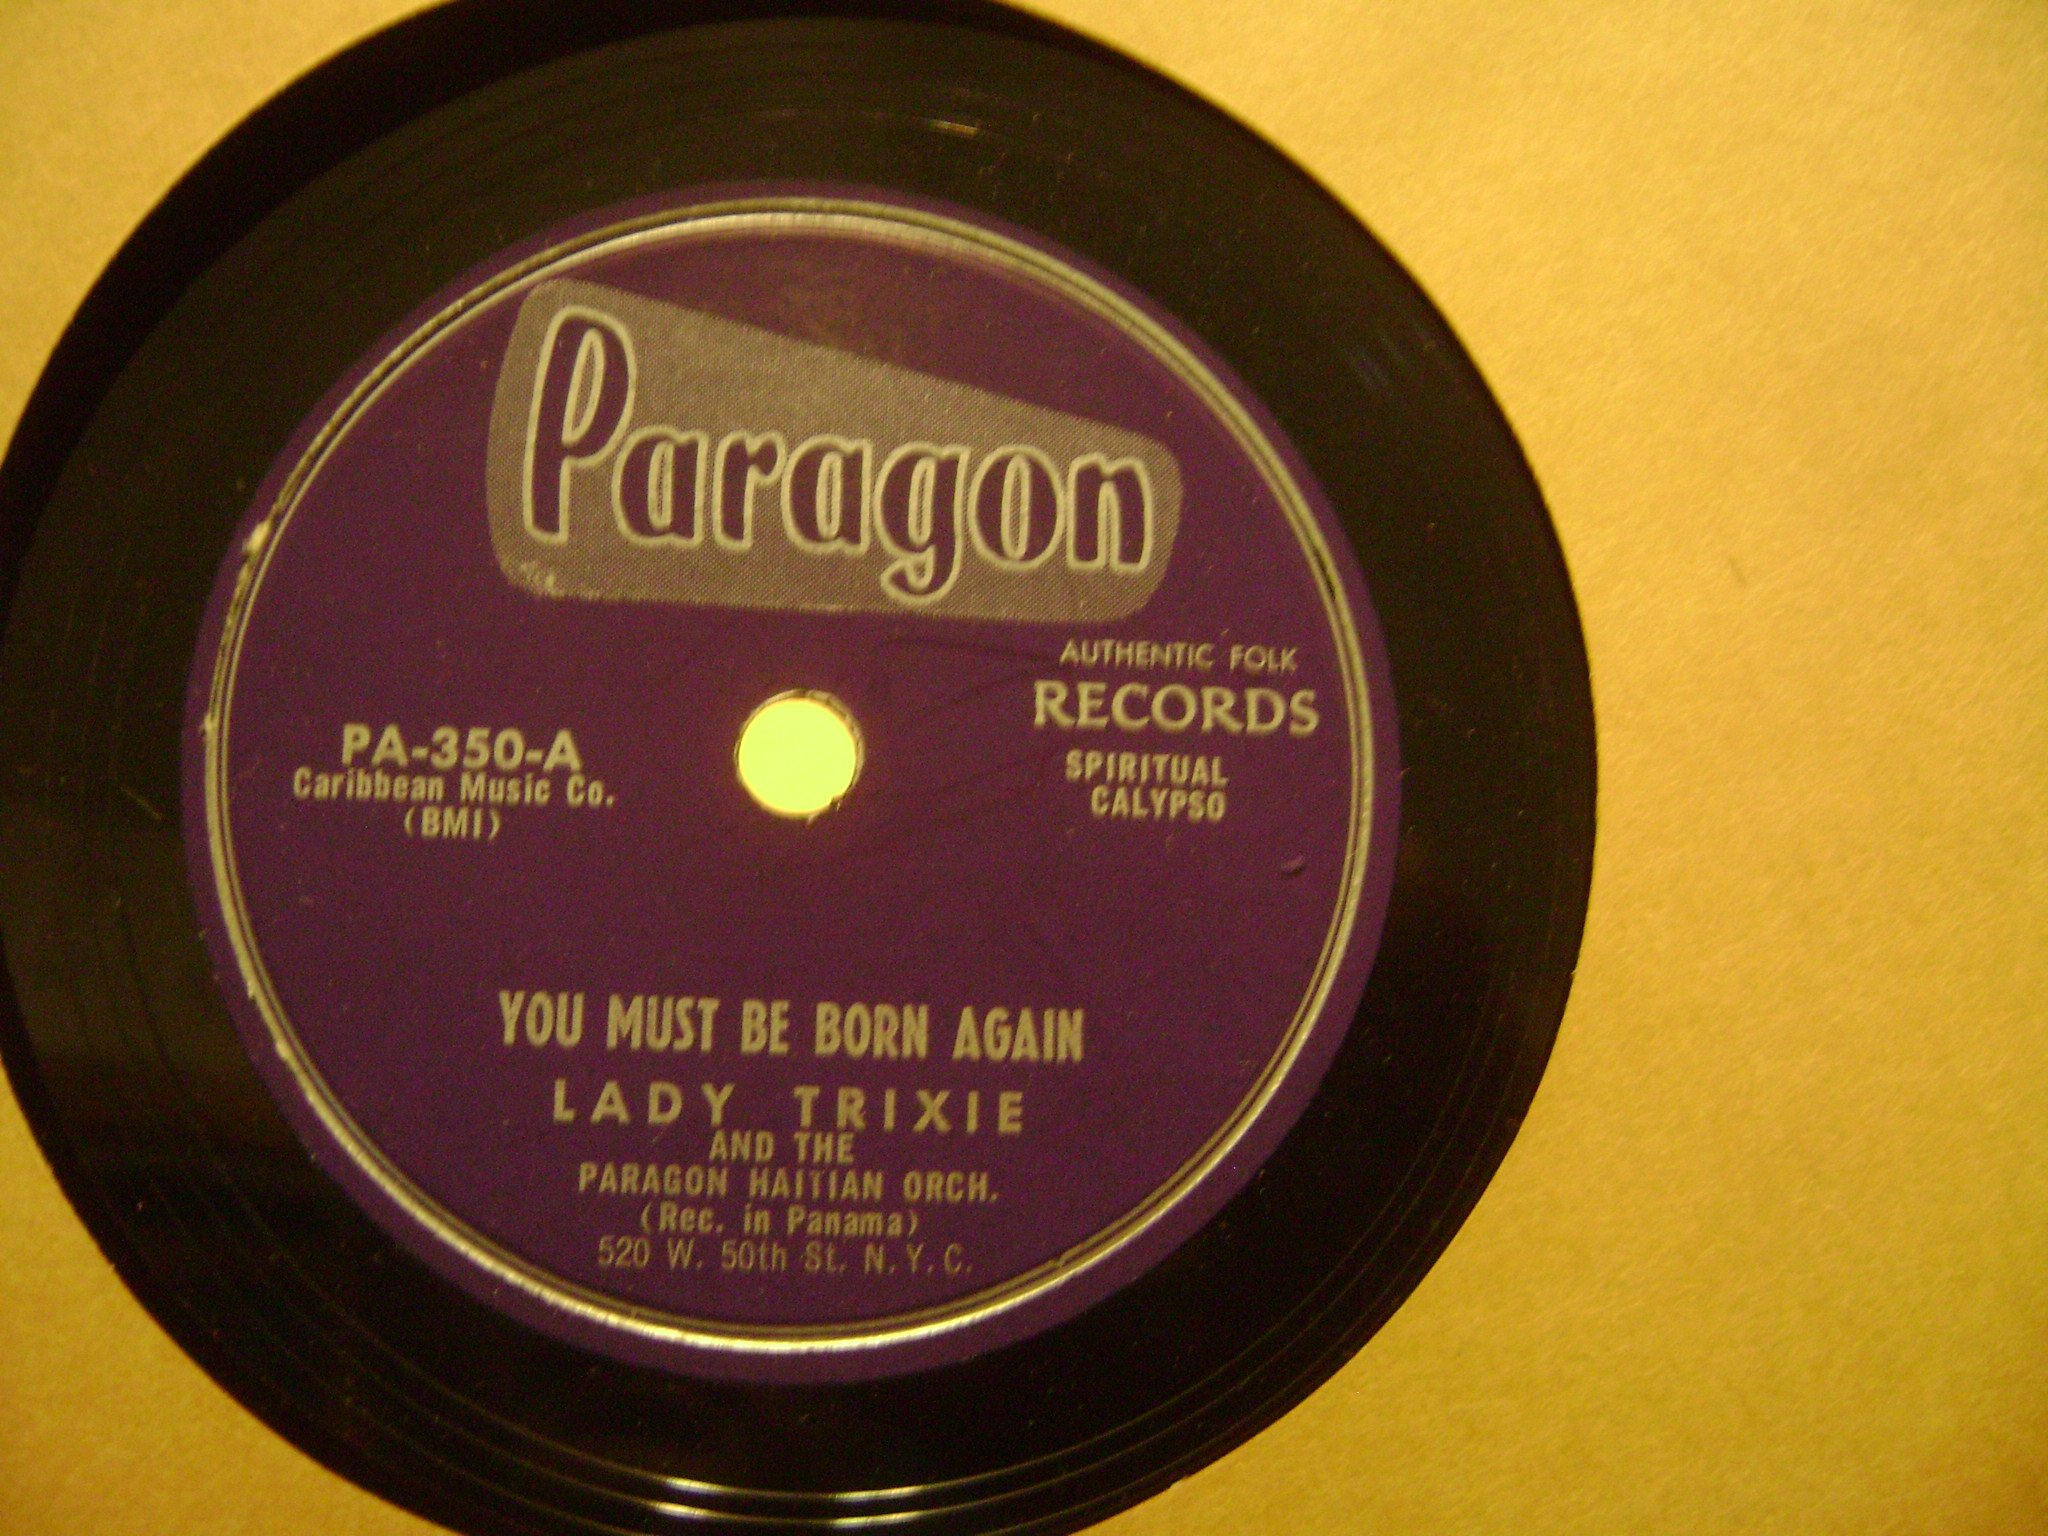 Turn Your Banner Roll Jeremiah. 78 RPM Haitian Orchestra Recorded In Panama. by Paragon